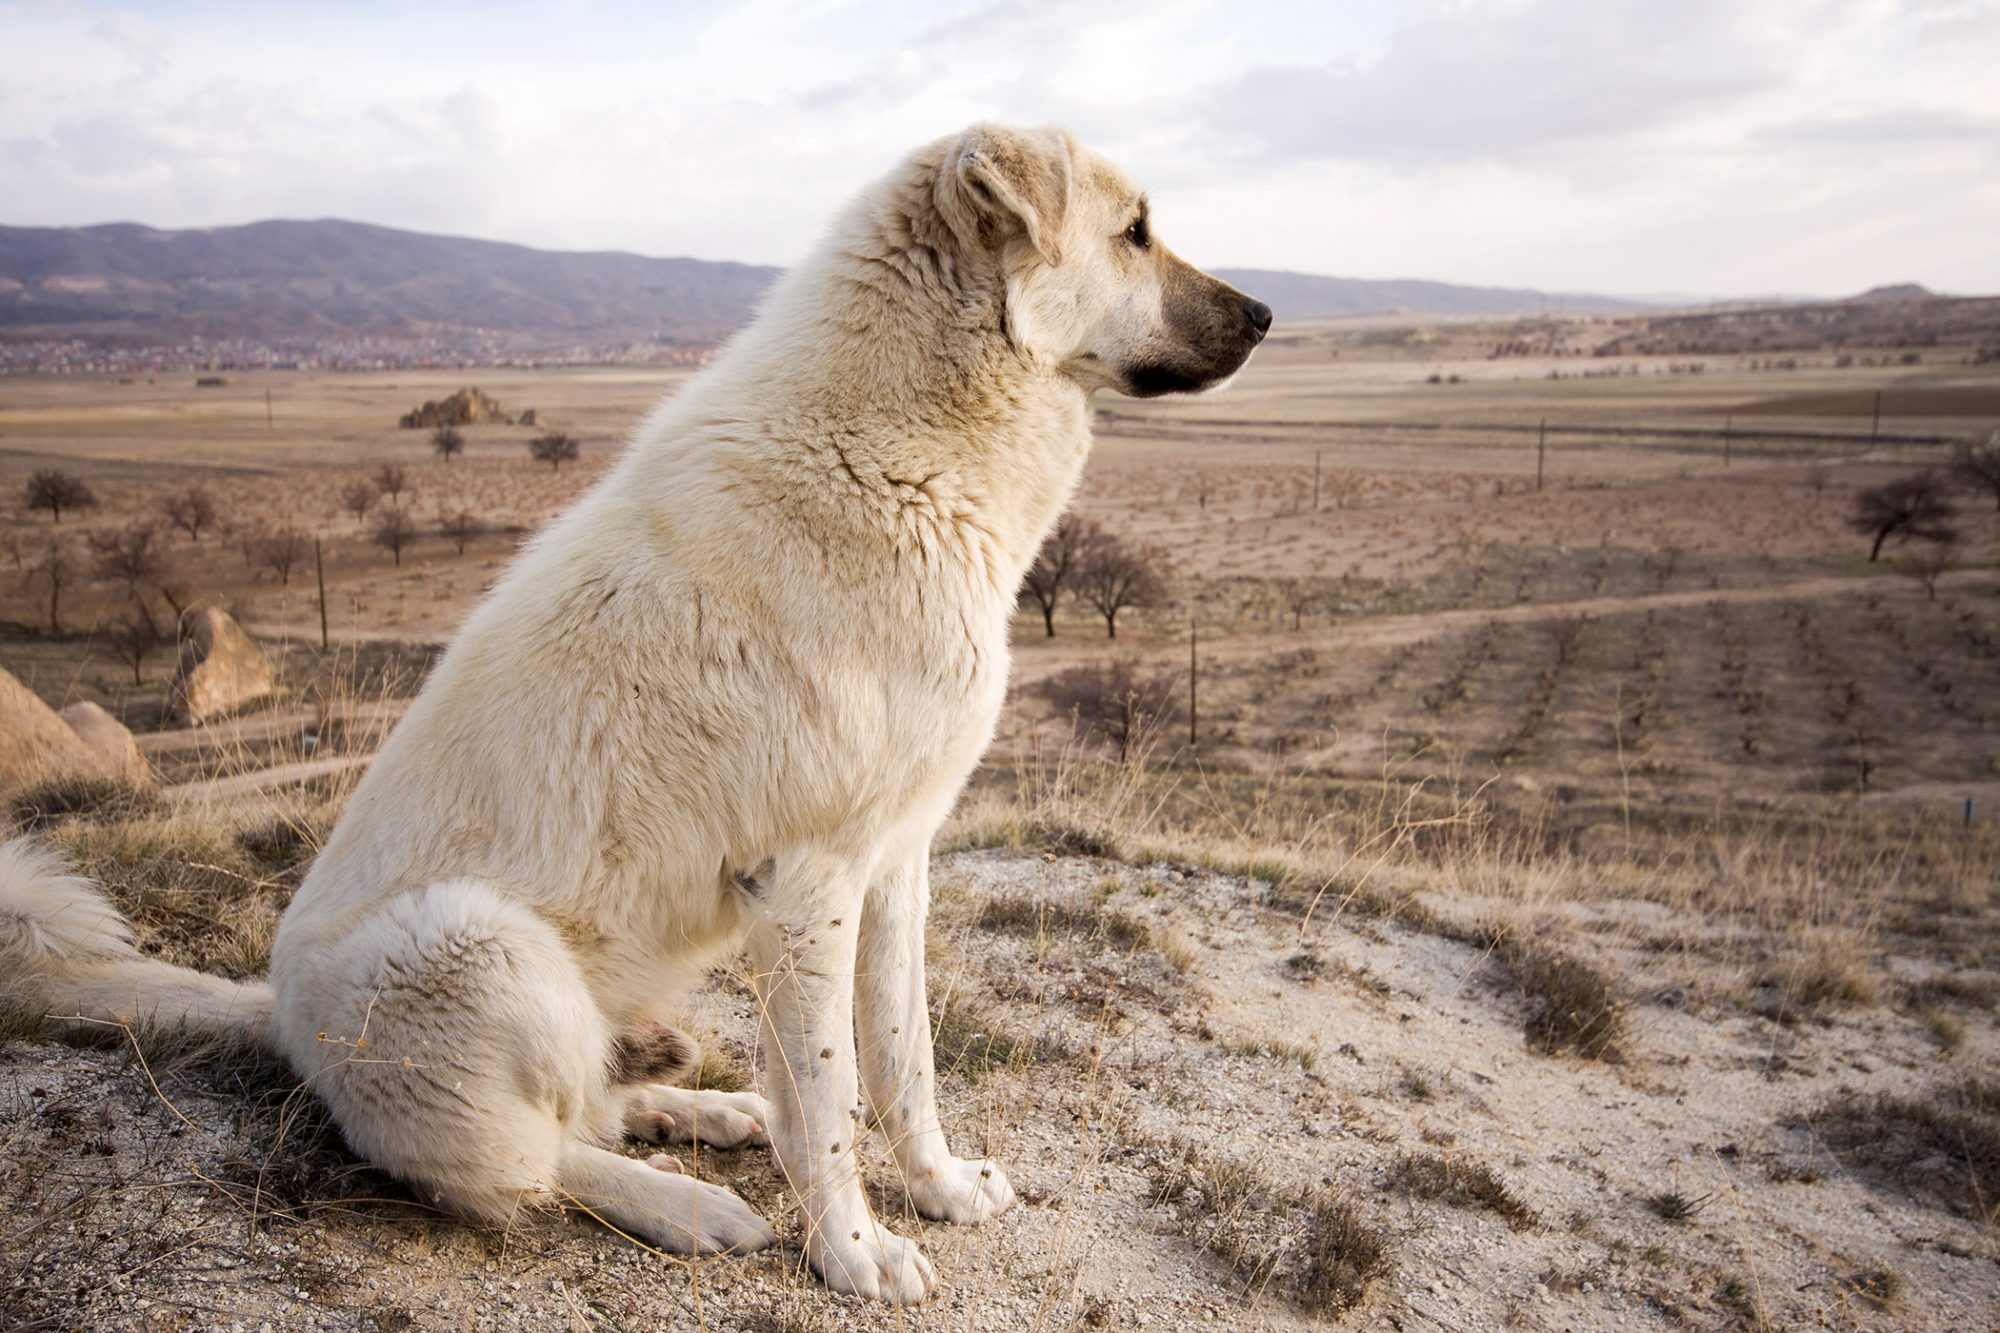 anatolian shepherd dog in desert